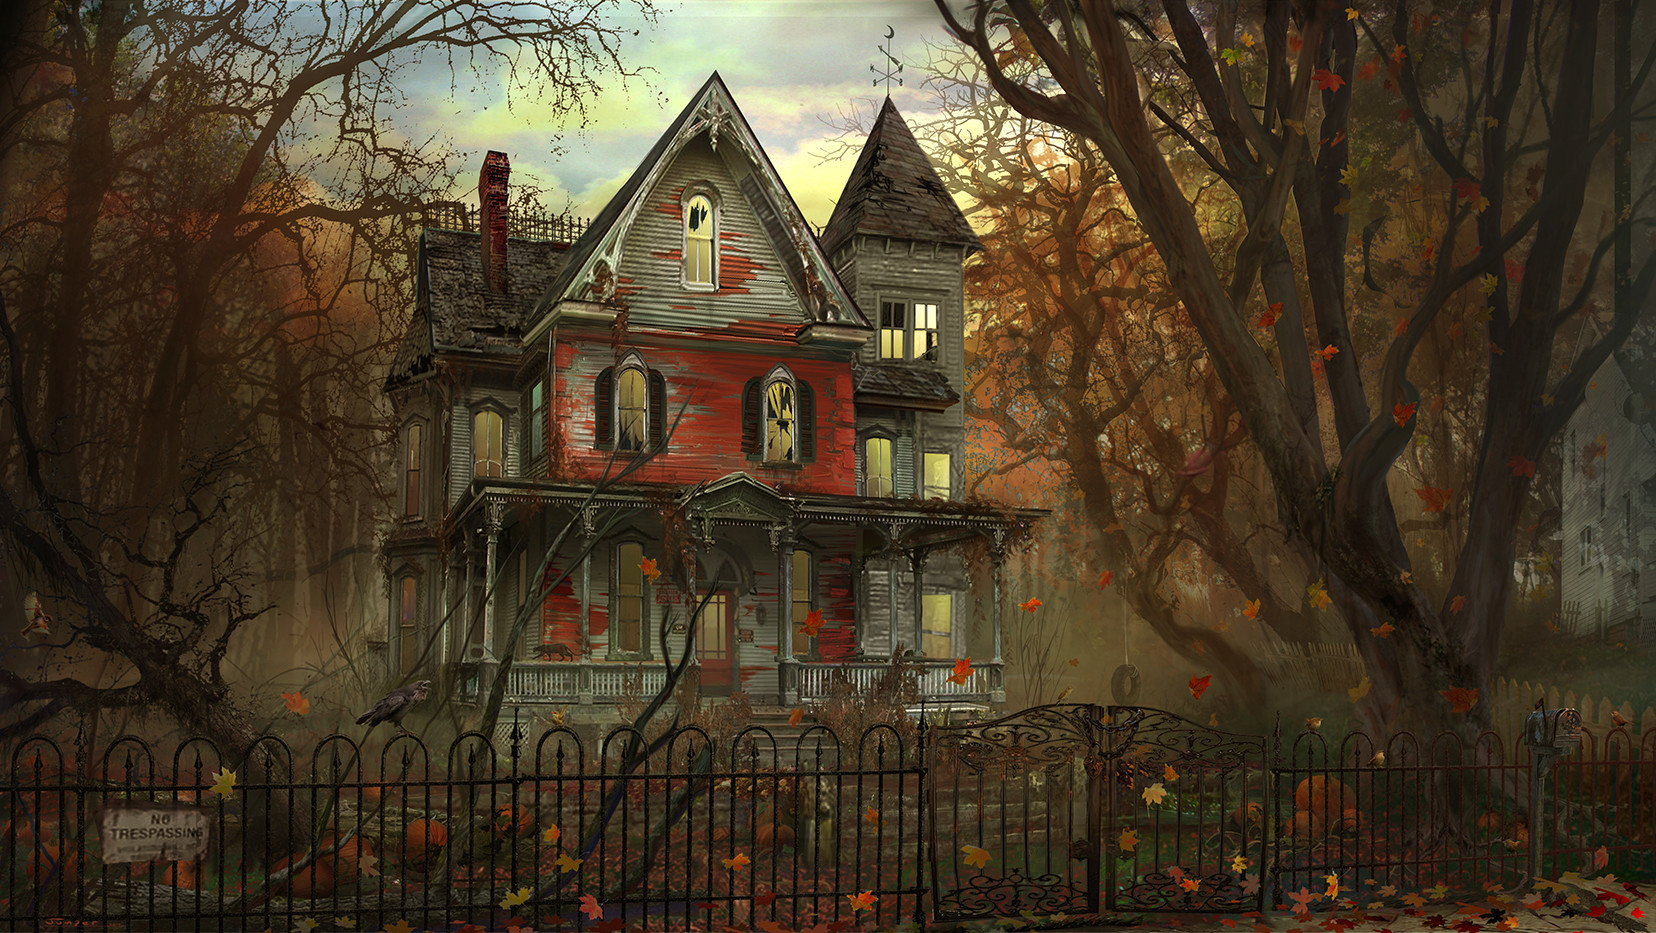 a Haunted House - Day